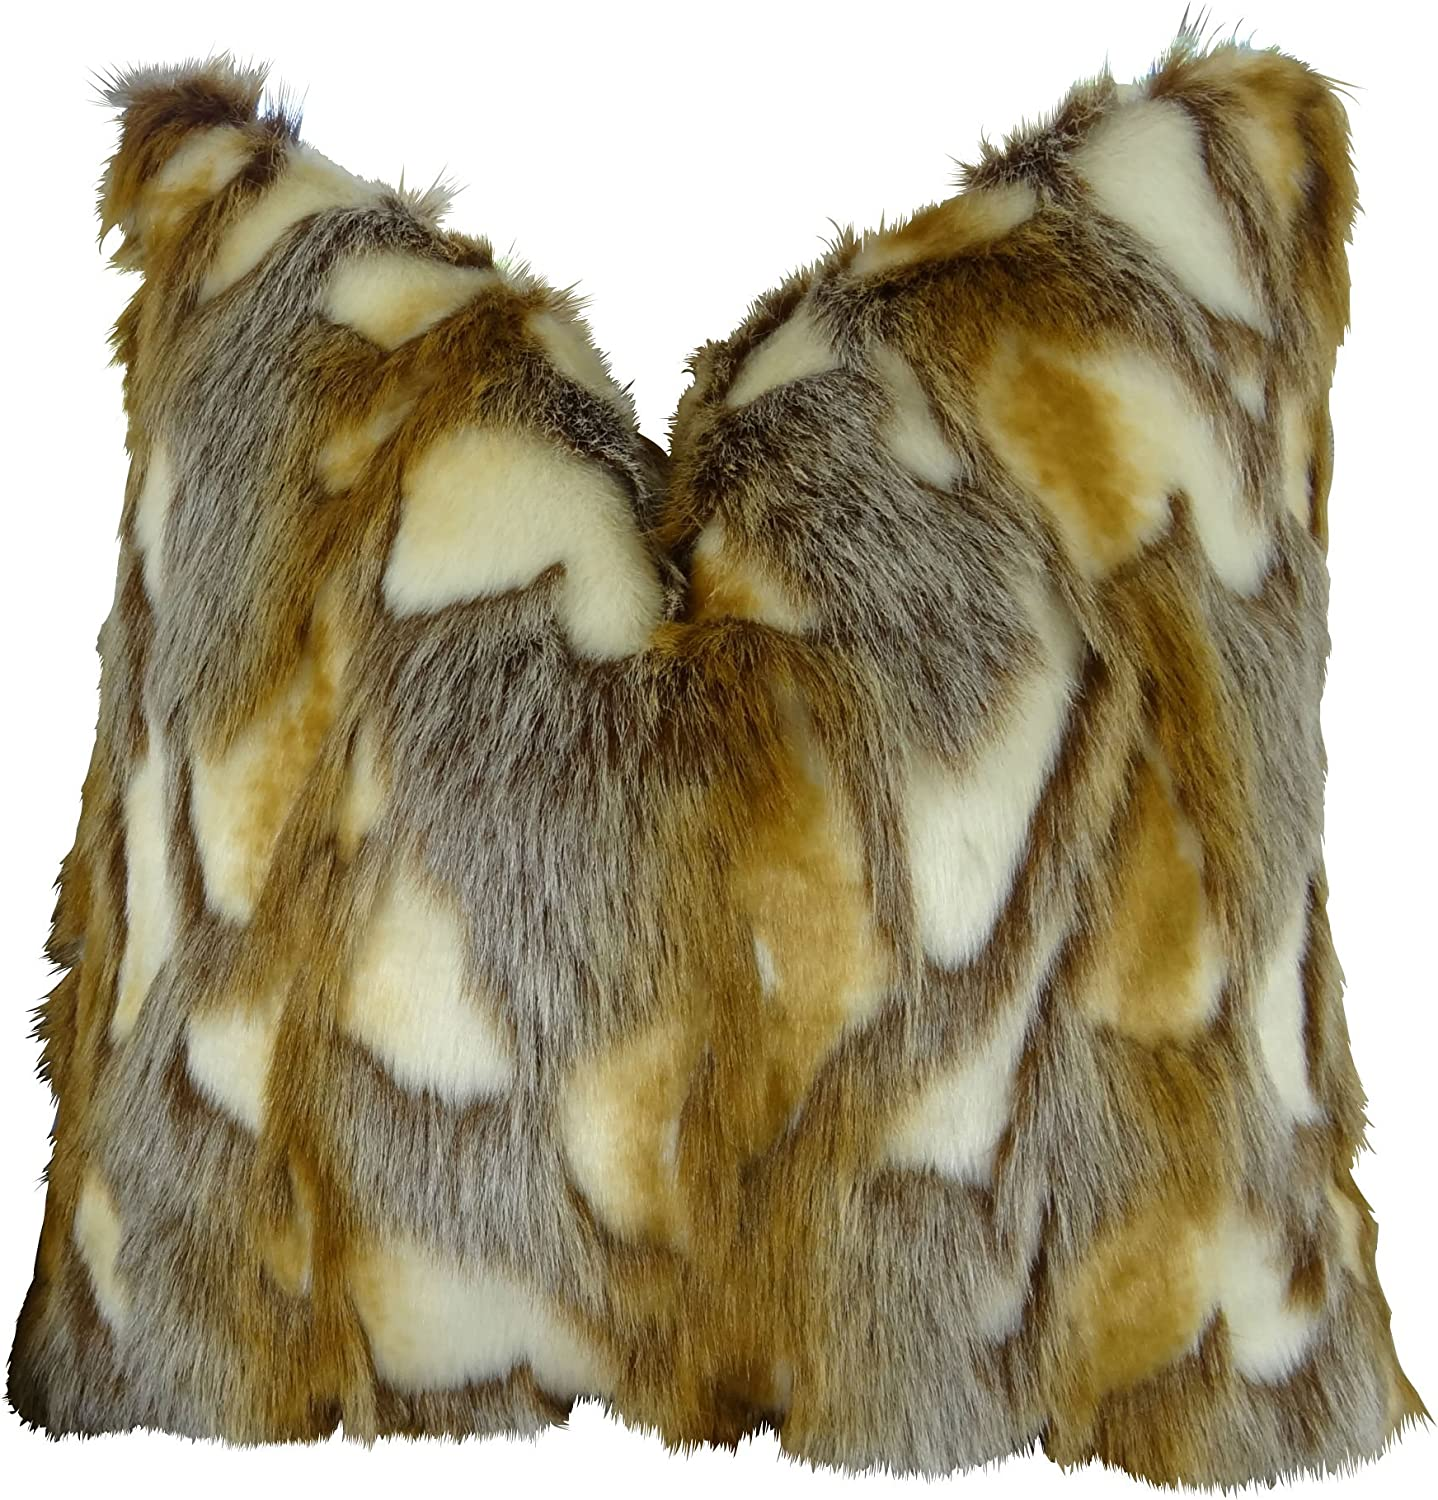 Thomas Collection Handmade in USA Luxury Faux Fur Throw Pillow for Couch Sofa Bed, Made in USA Pillow Insert & Cover, Light Brown gold White Pillow  17403